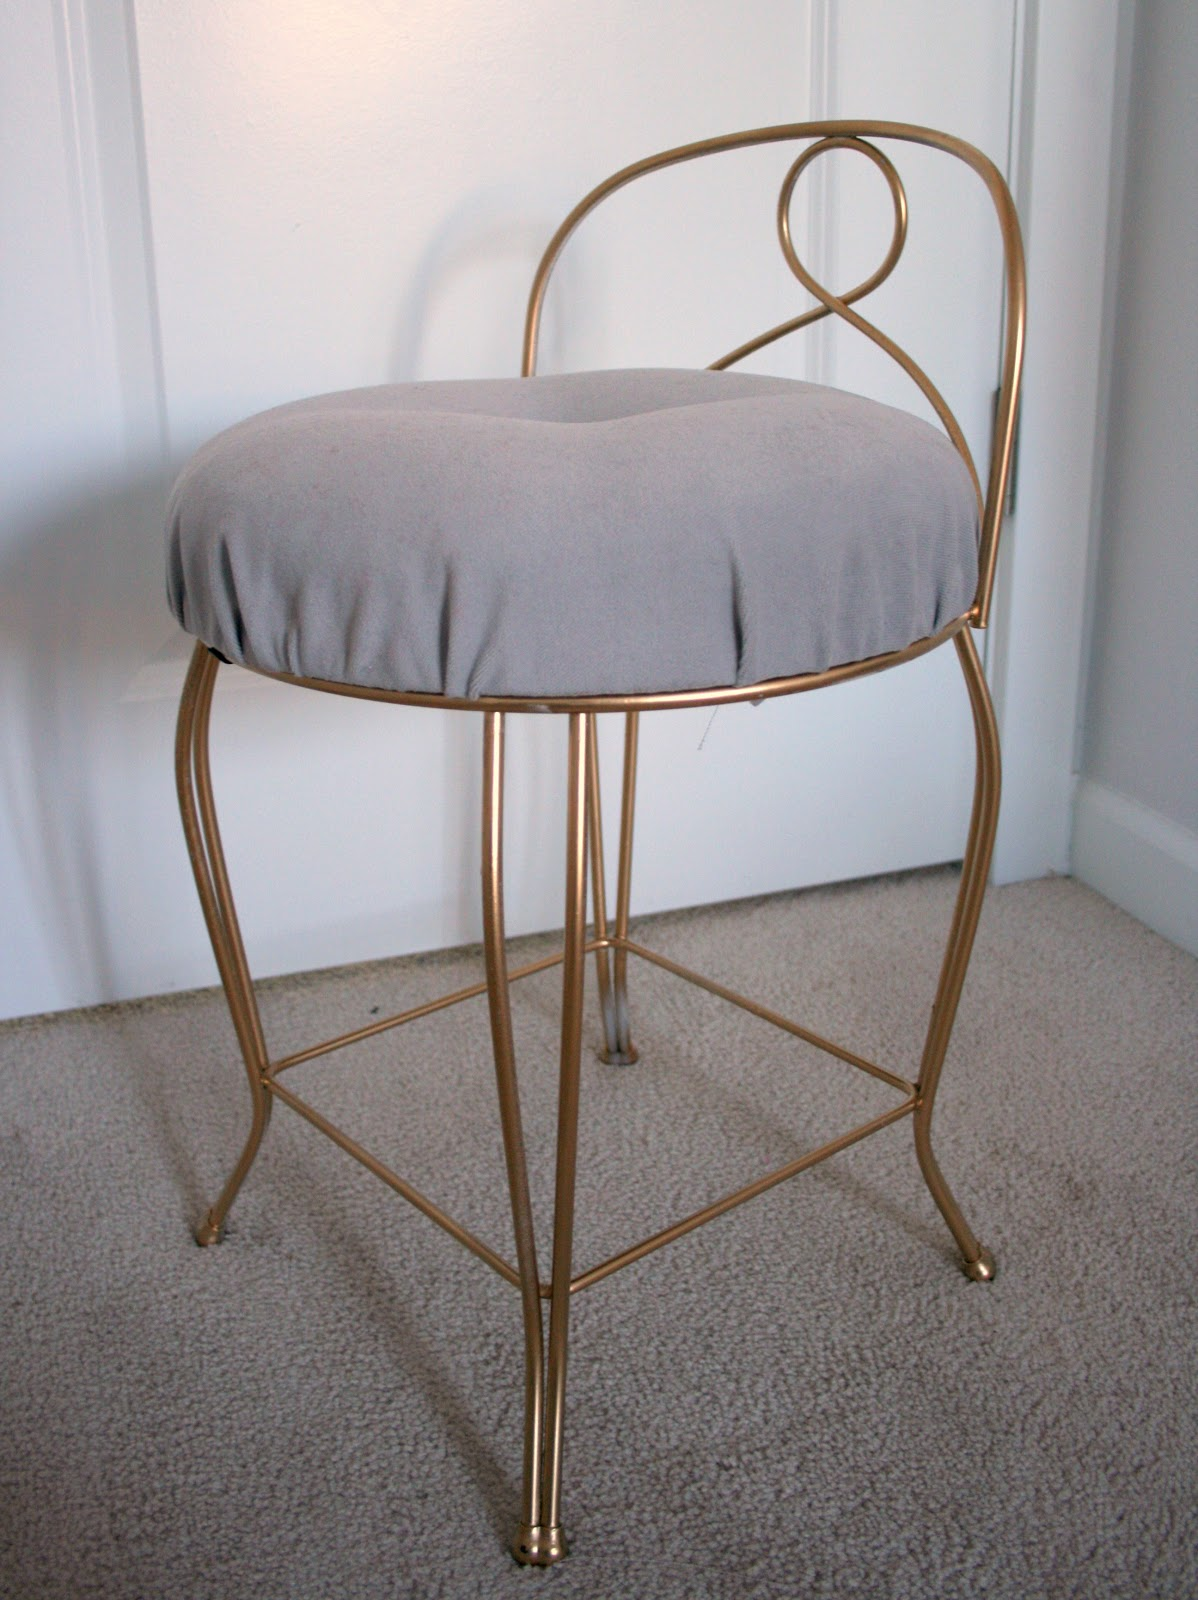 Comfortable Vanity Chair Furniture Re Do Pretty Vintage Vanity Stool Create Enjoy